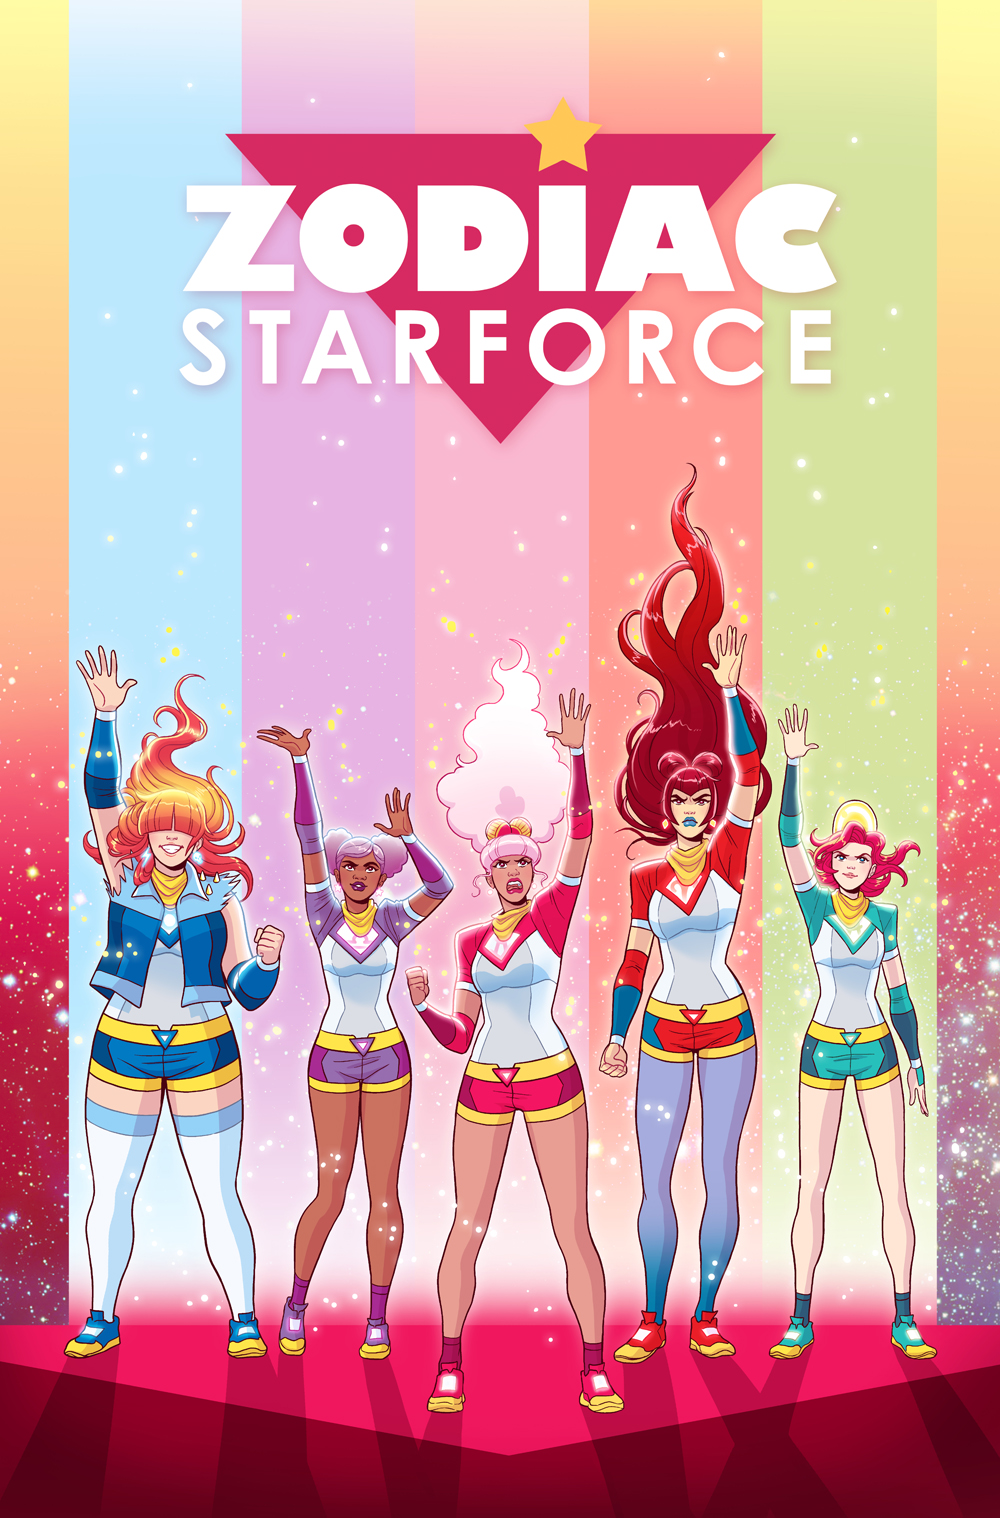 Zodiac Starforce: Cries of the Fire Prince #1 cover- Dark Horse comics